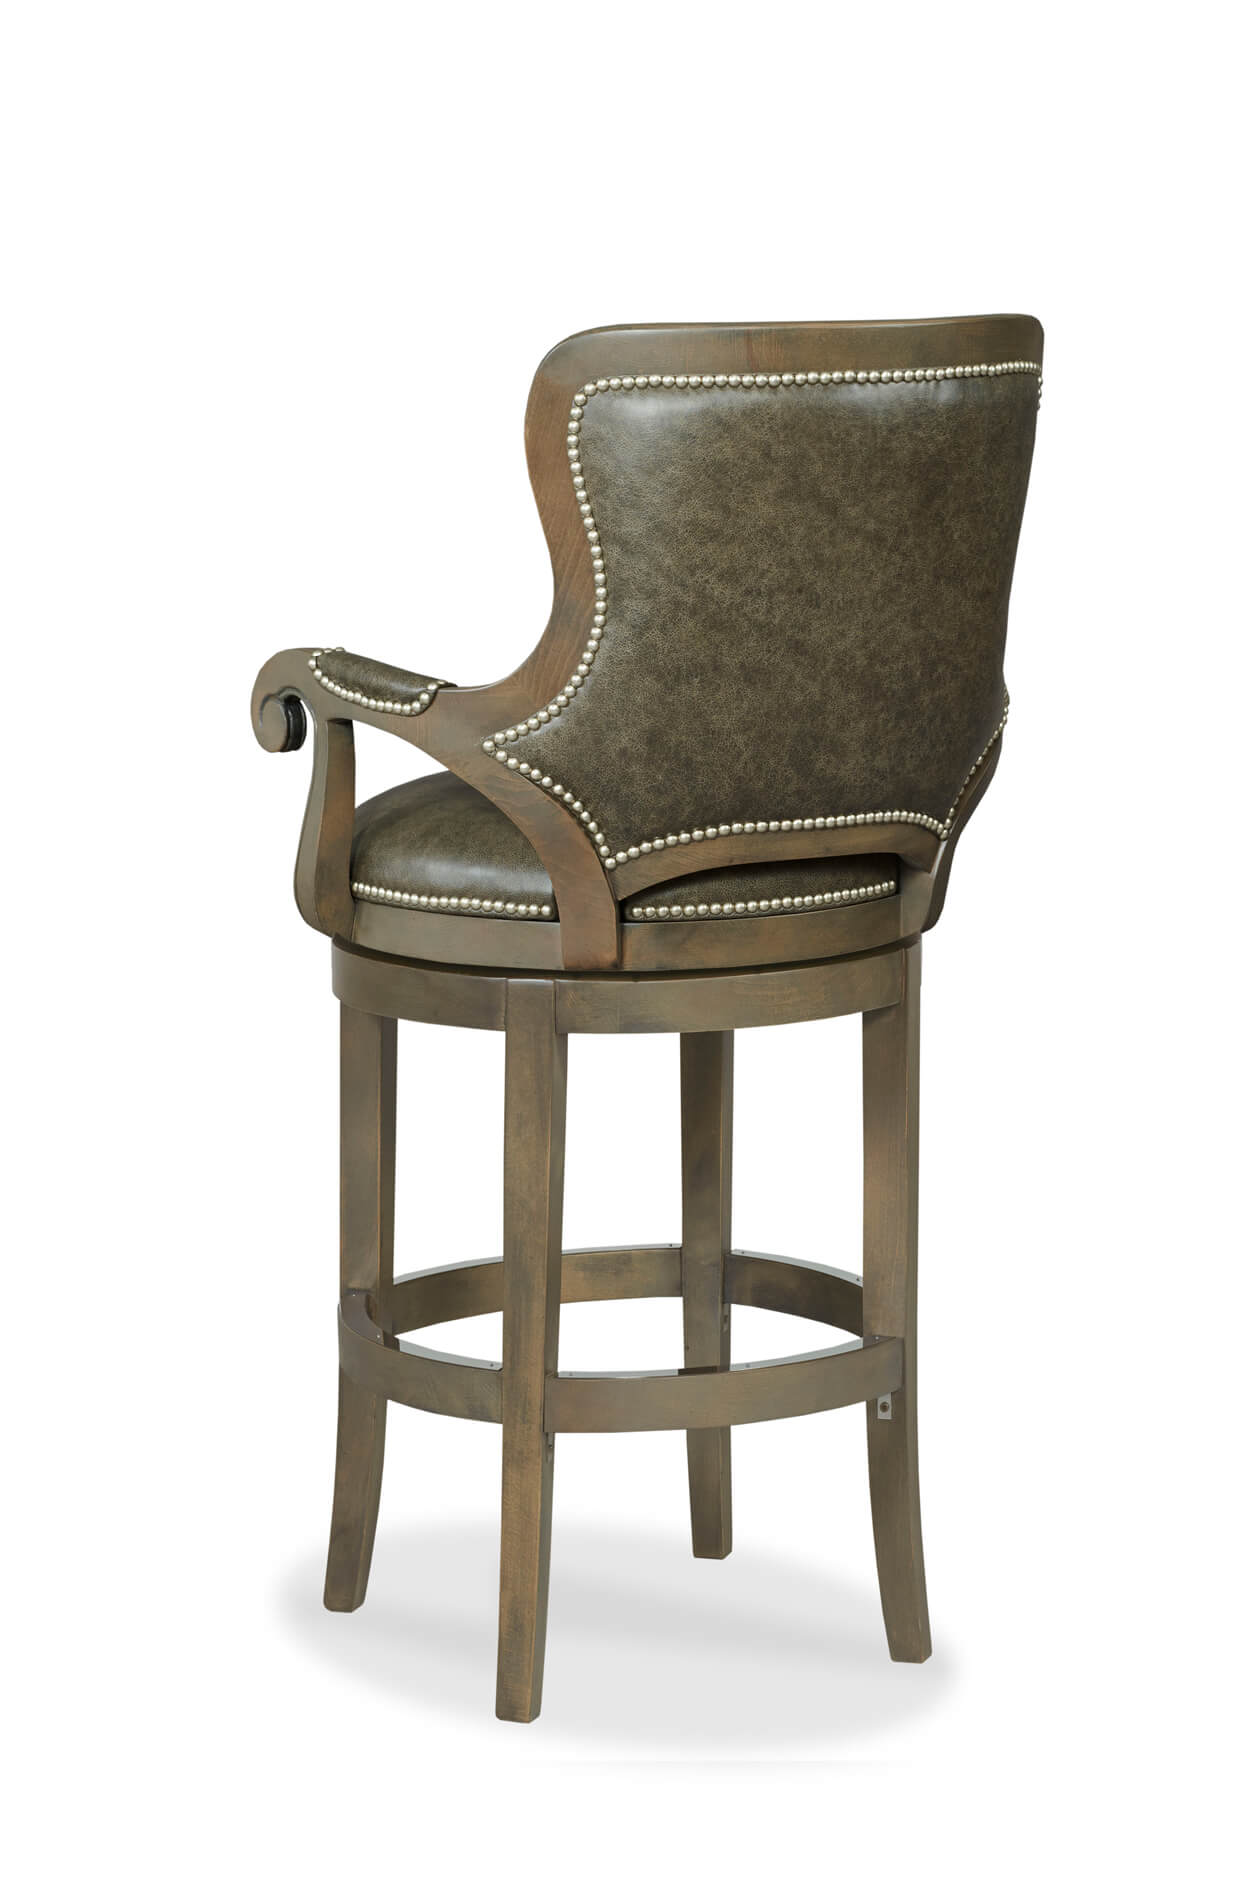 Comfortable Swivel Counter Stools Buy Spritzer Upholstered Wood Swivel Bar Stool W Arms